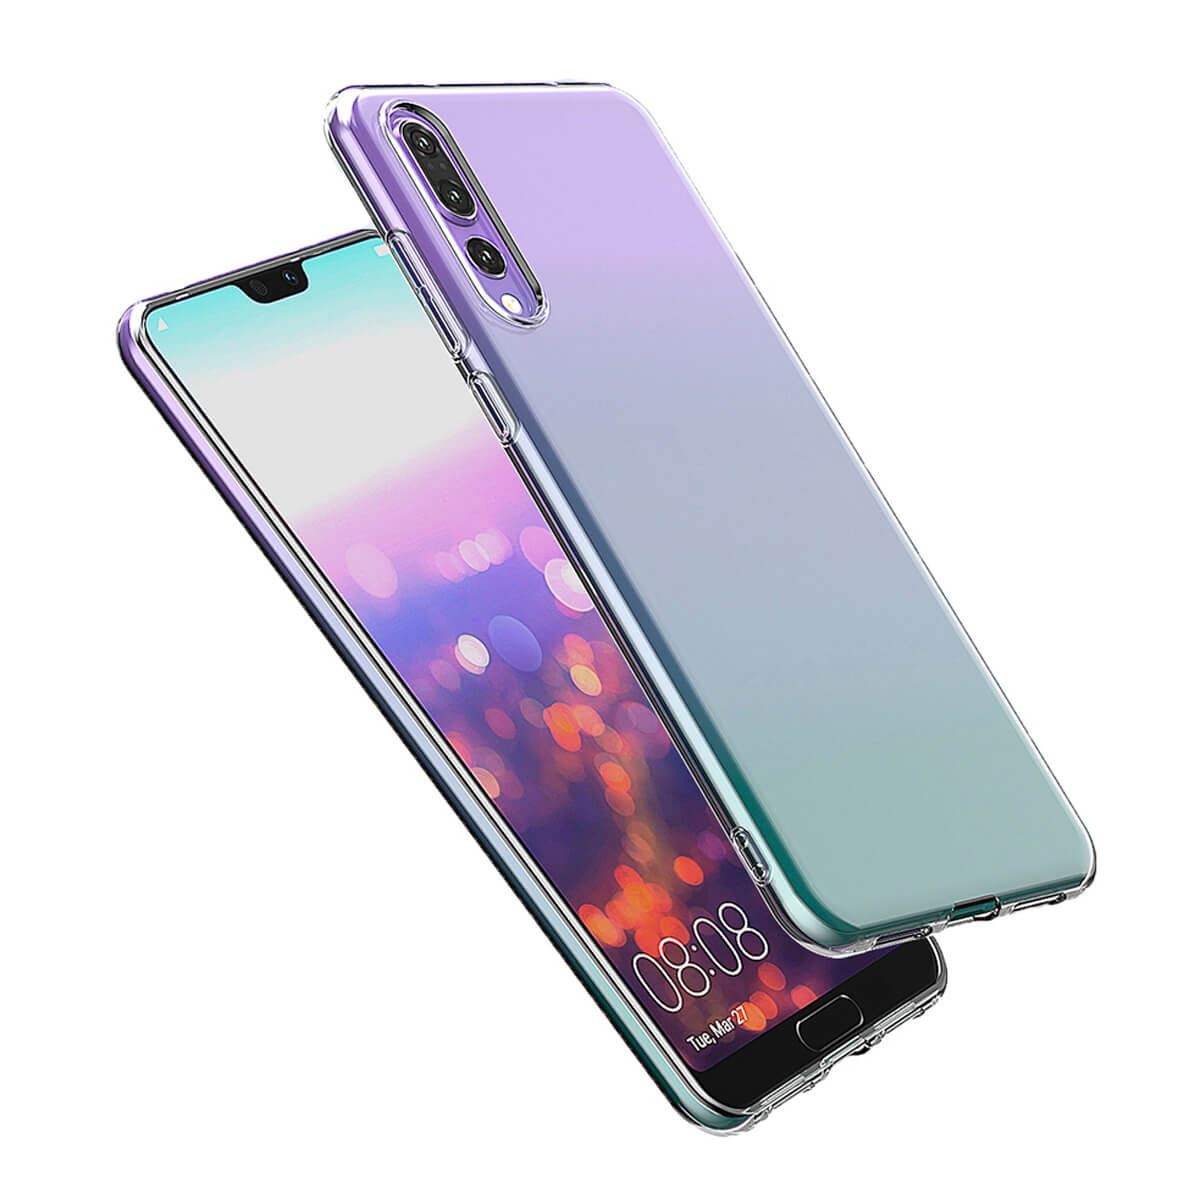 Shockproof-Silicone-Protective-Clear-Gel-Cover-Case-For-Huawei-P20-Pro-P-Smart thumbnail 63